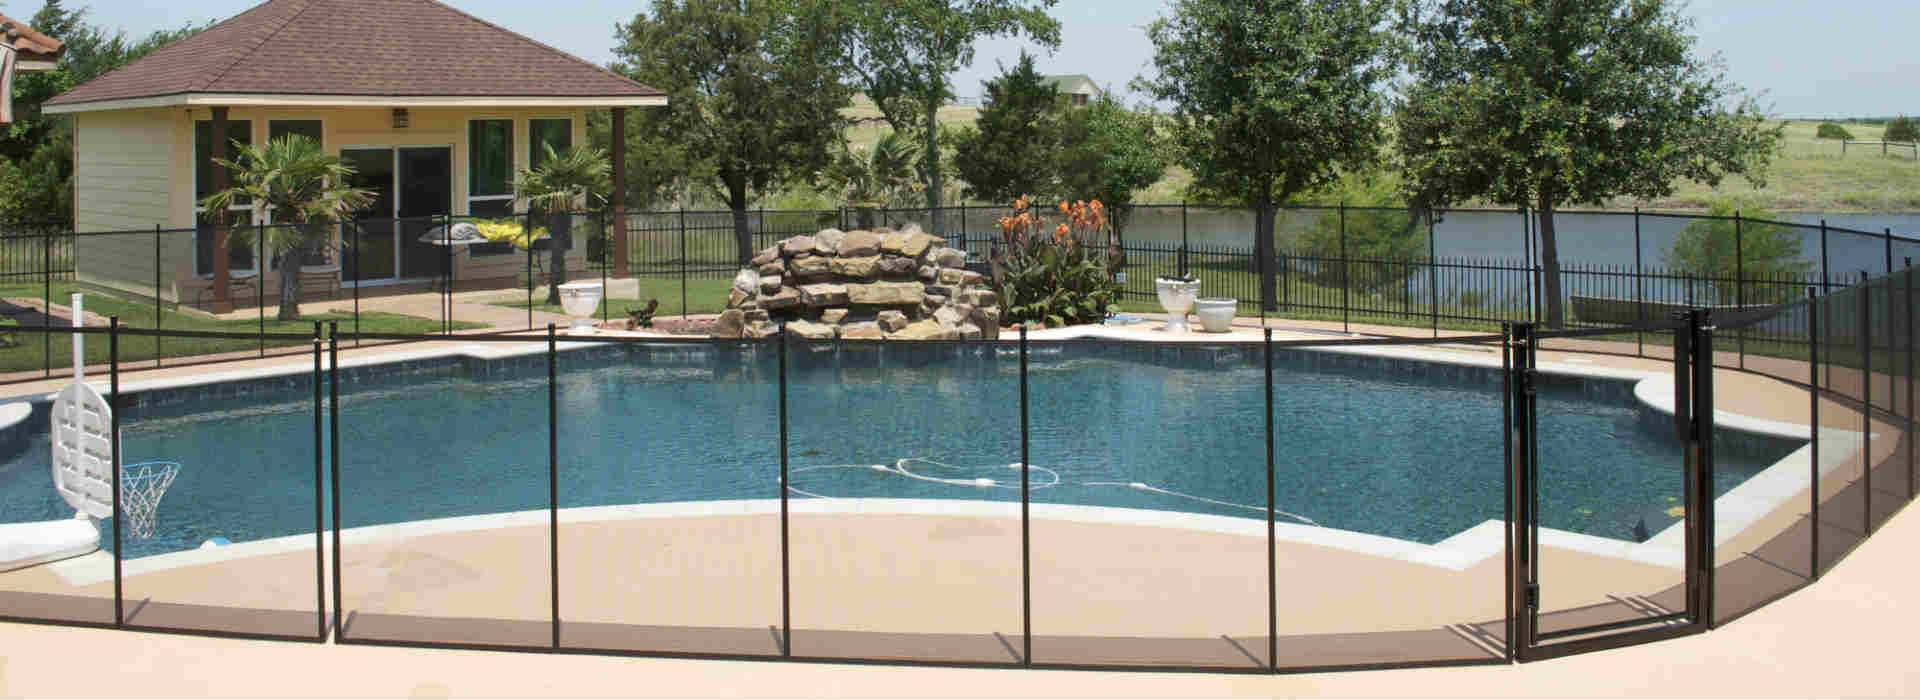 dallas pool fence